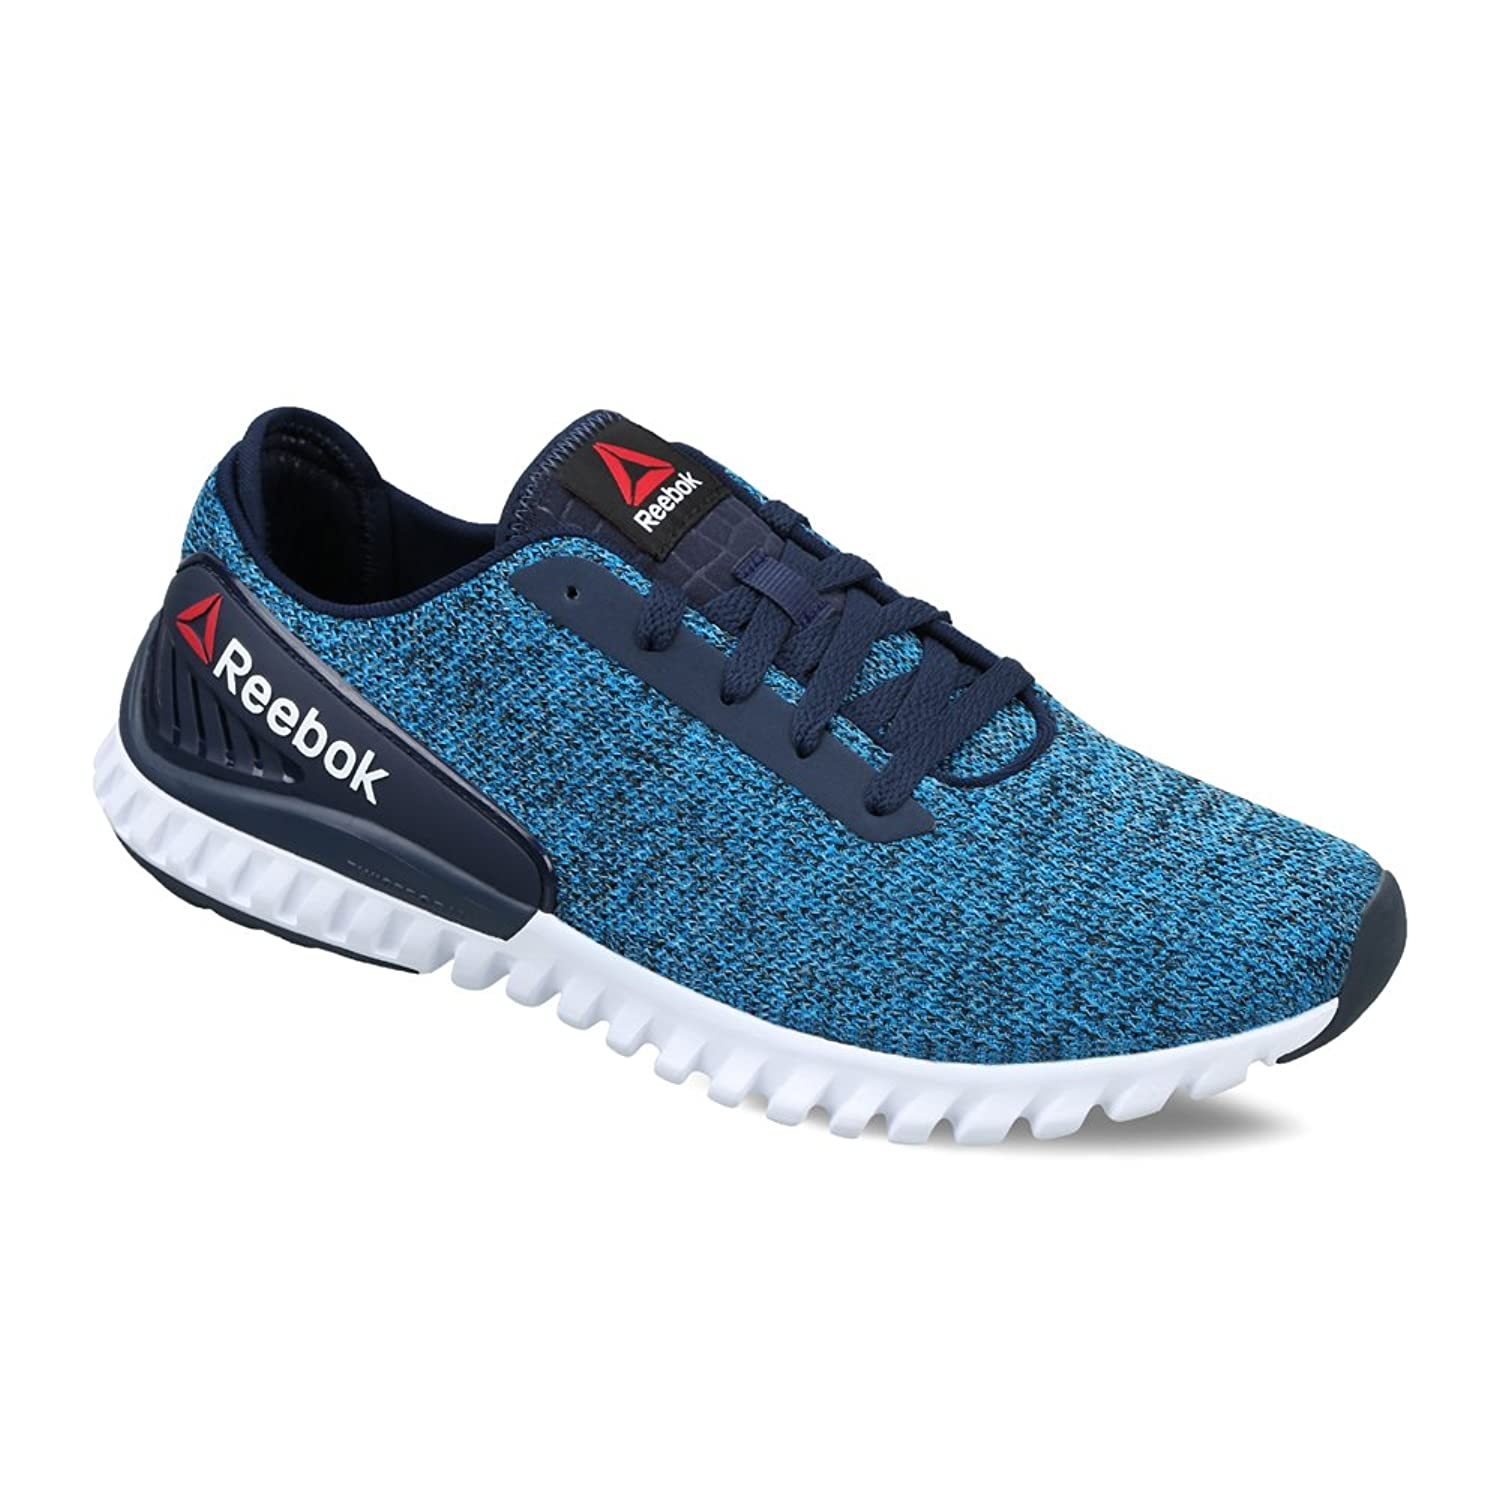 Reebok Ultralite Running Shoe